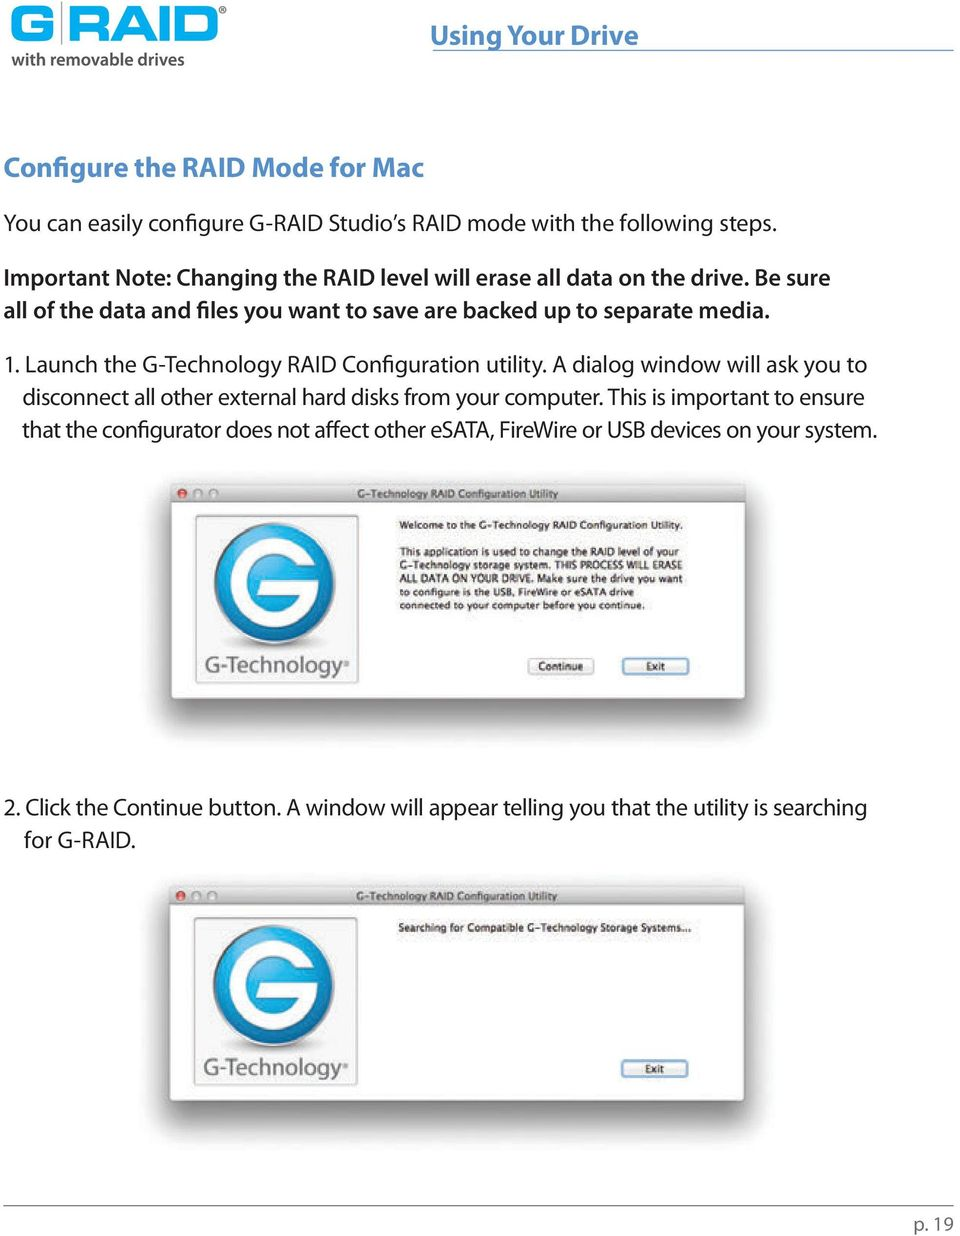 Launch the G-Technology RAID Configuration utility. A dialog window will ask you to disconnect all other external hard disks from your computer.